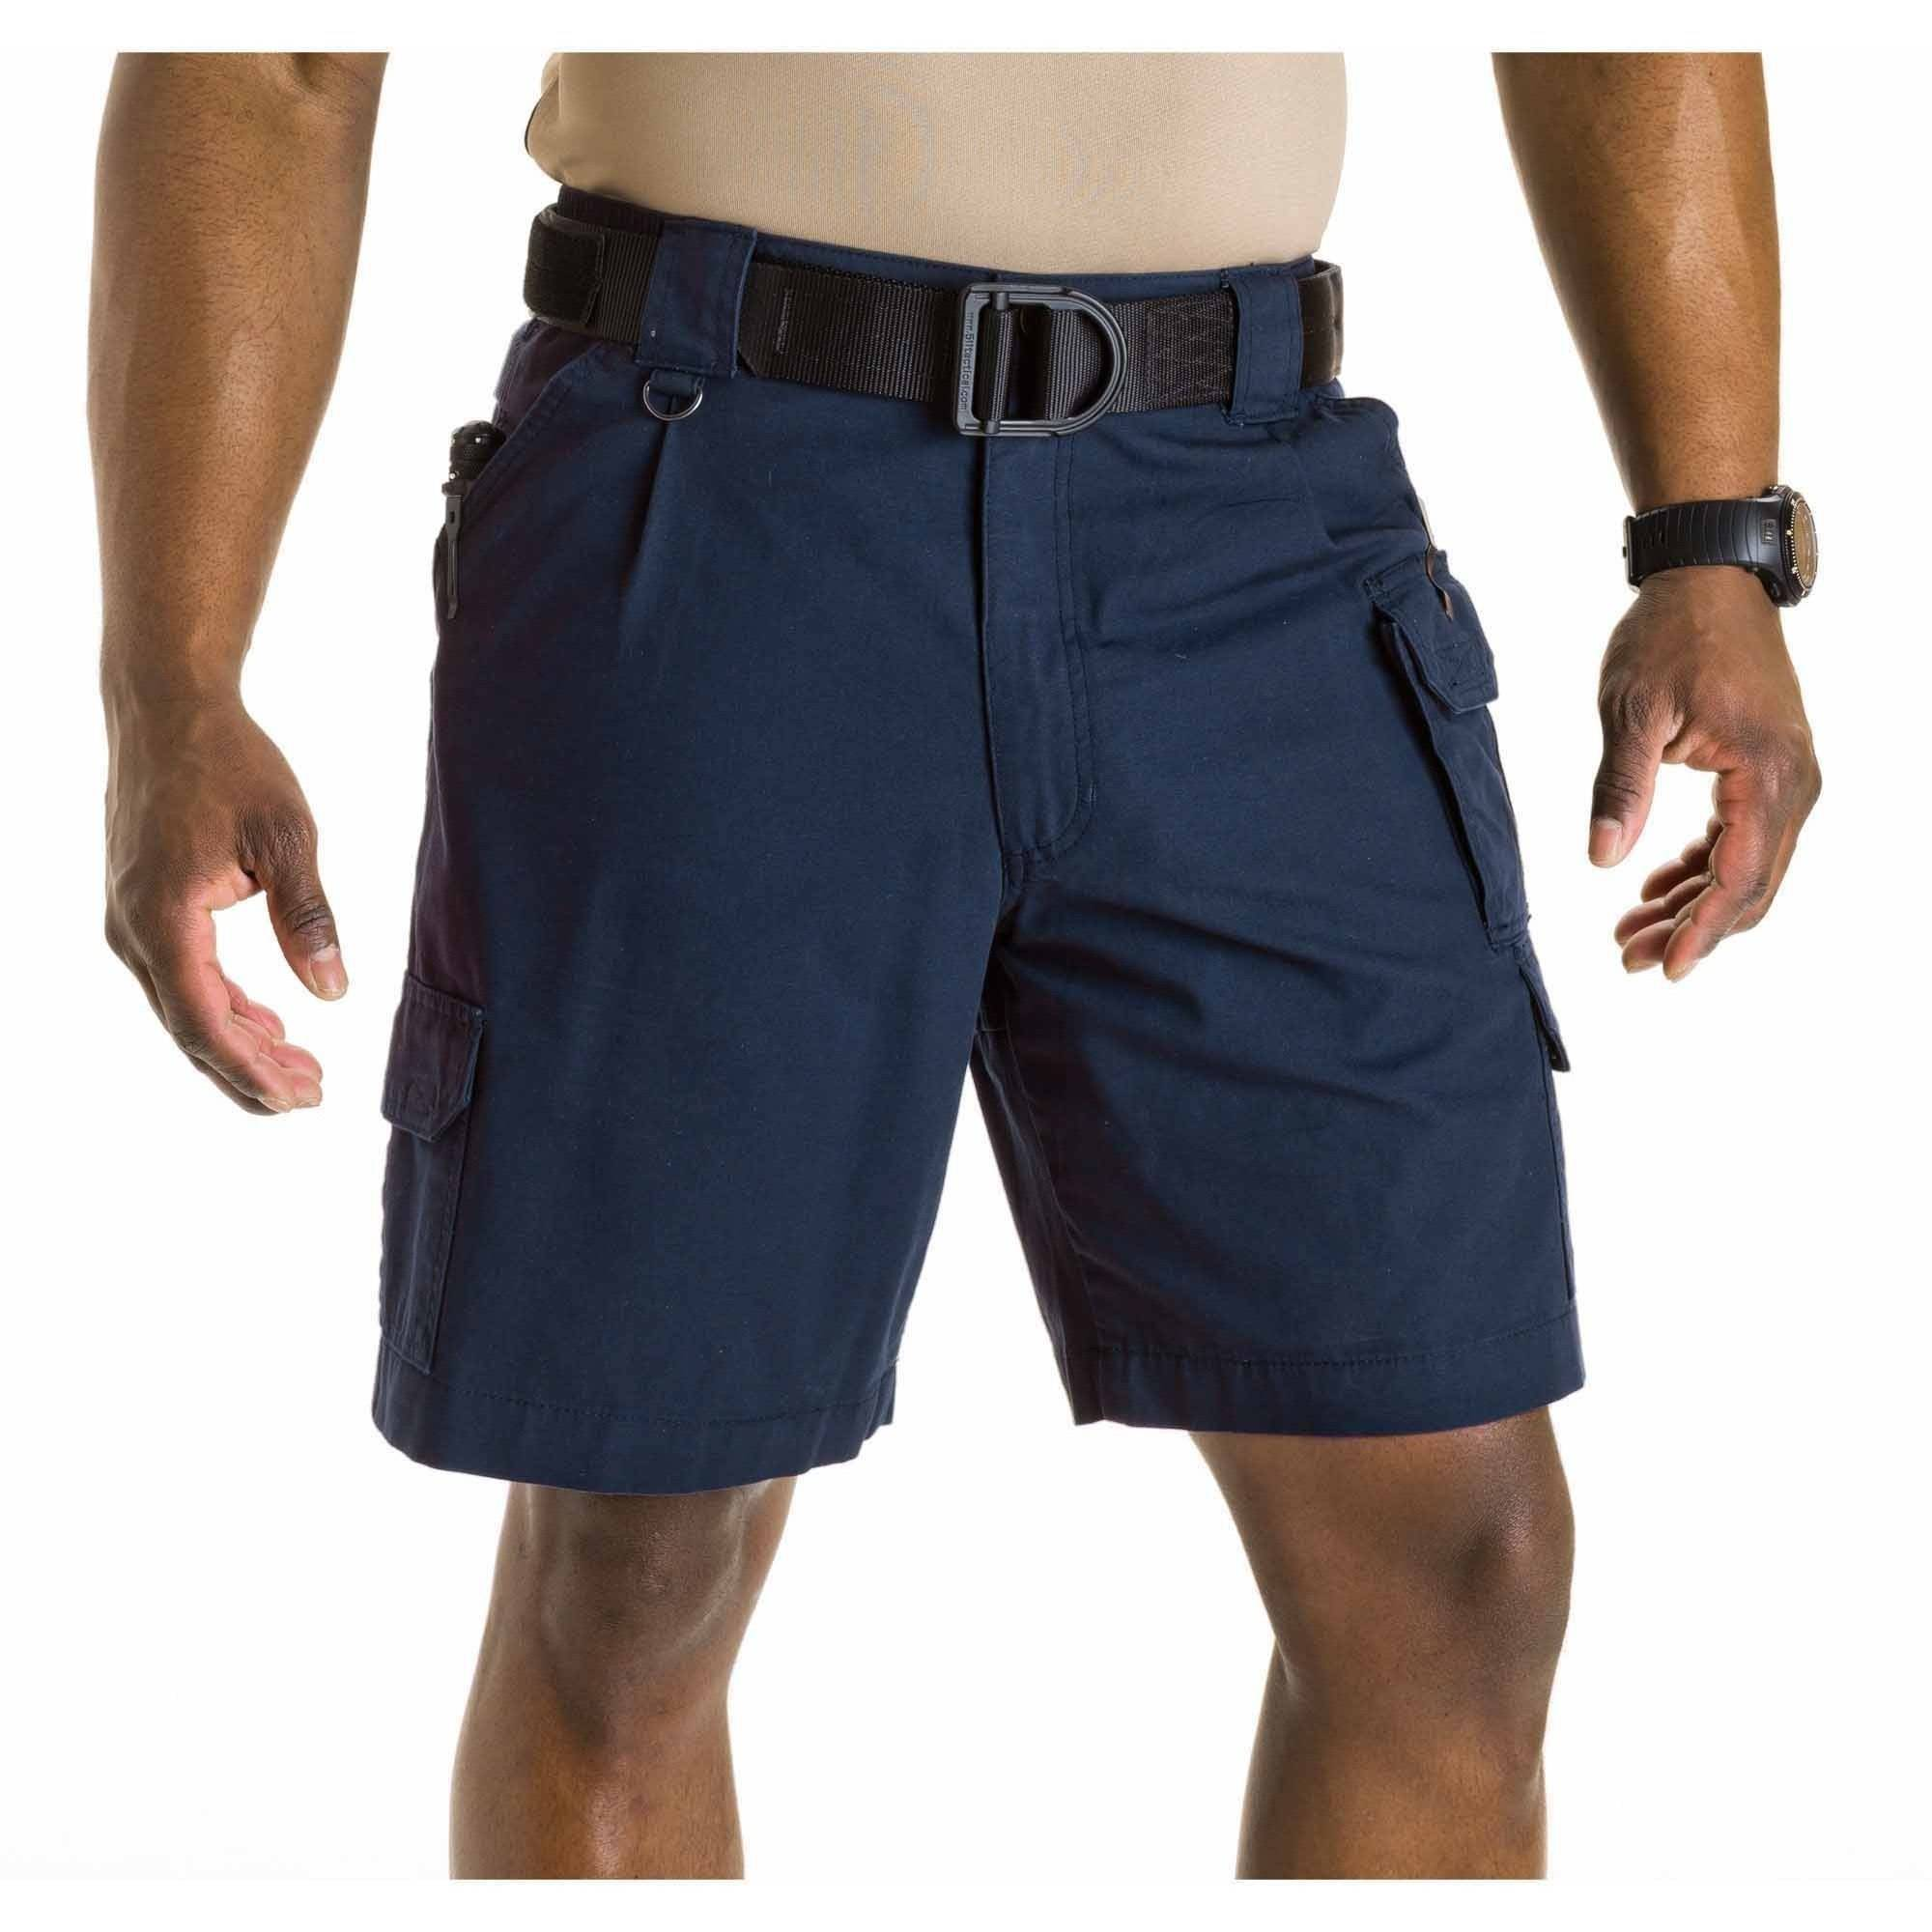 5.11 Tactical Men's Cotton Tactical Shorts, Fire Navy